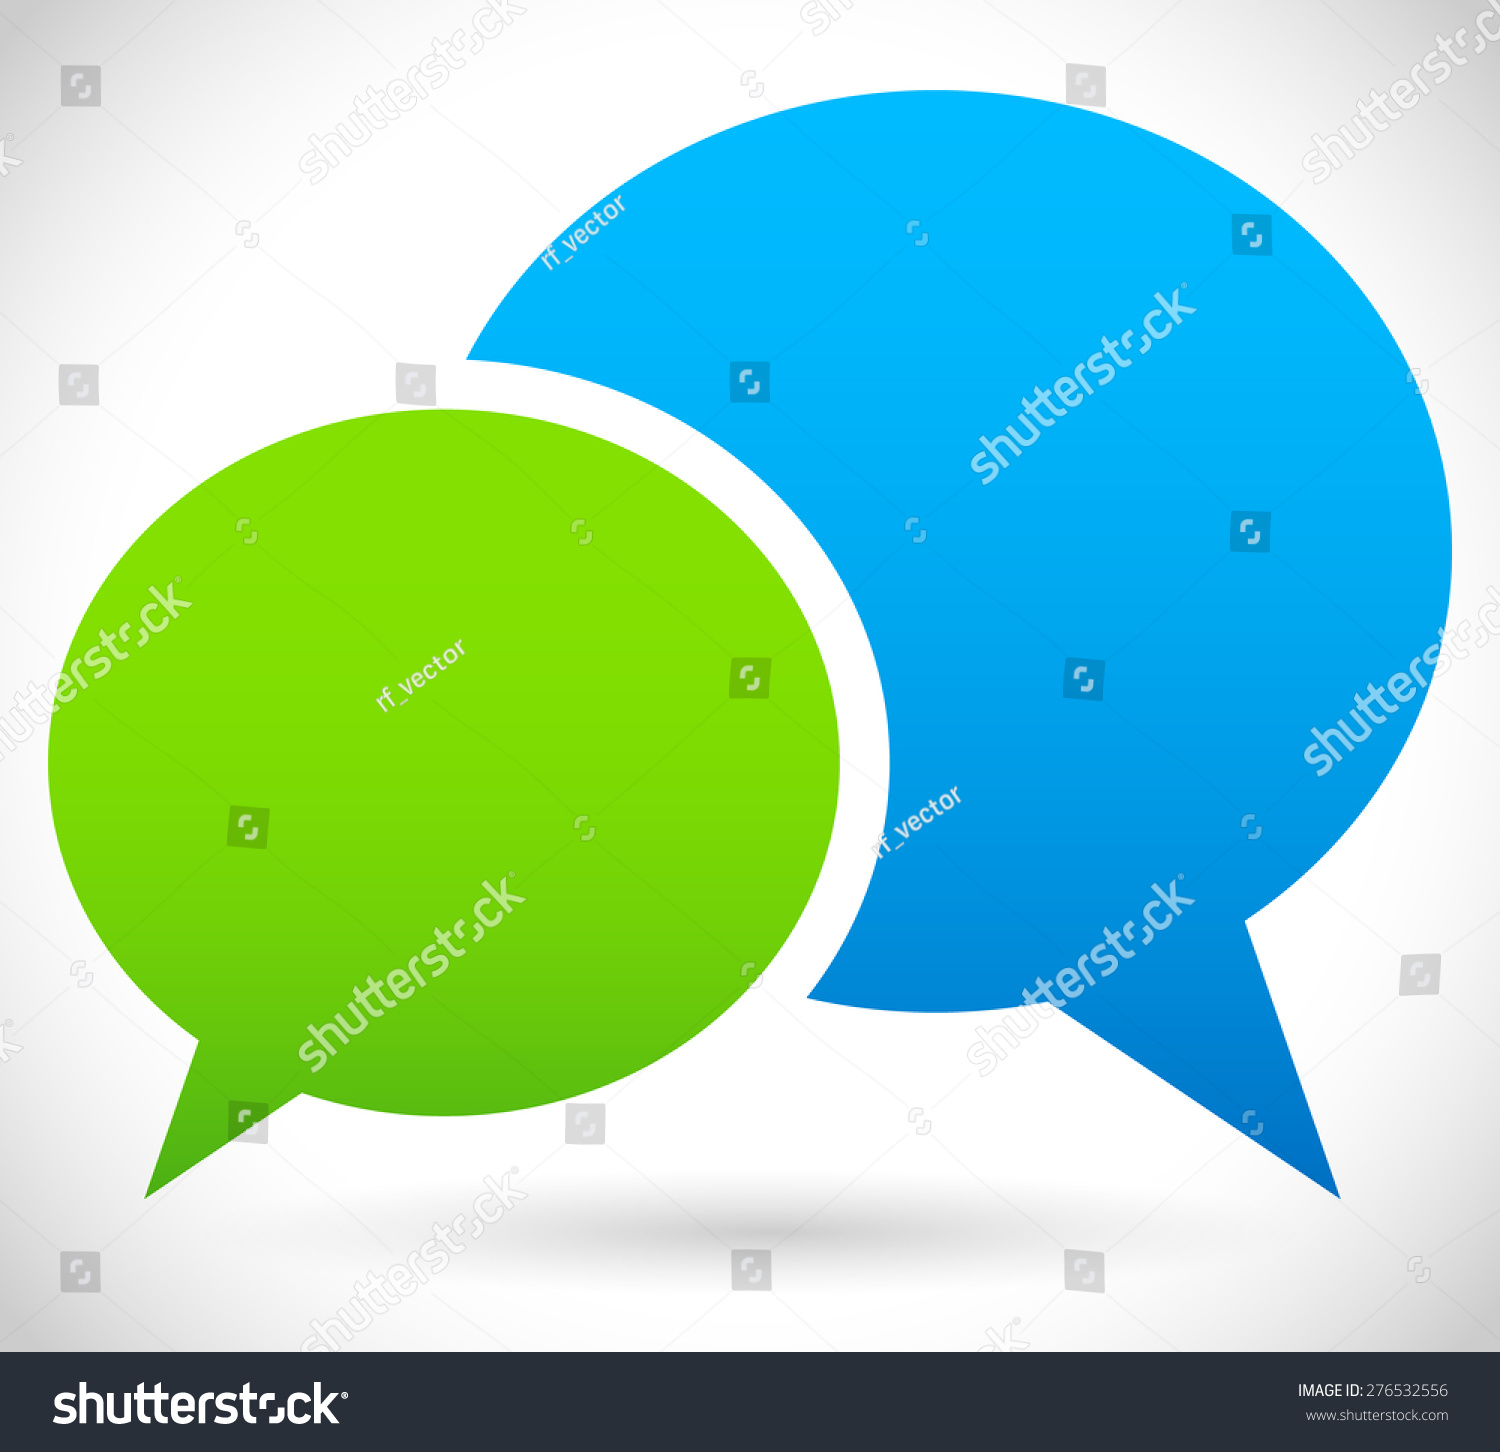 Two Overlapping Speech Talk Bubbles Communication Stock